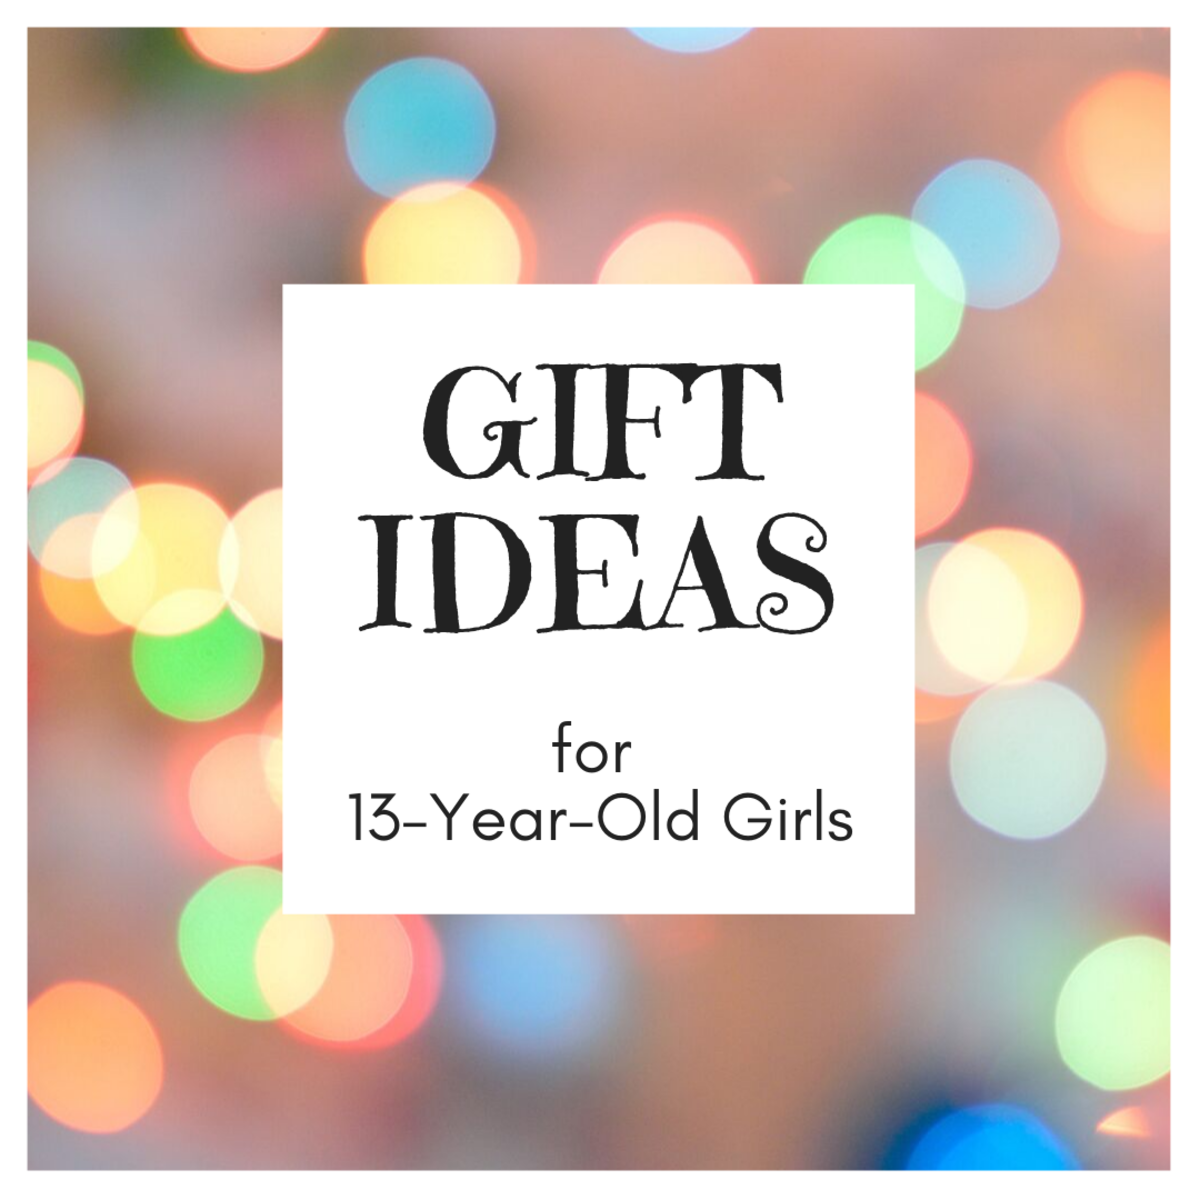 These gifts are sure to delight even the pickiest of 13-year-olds.